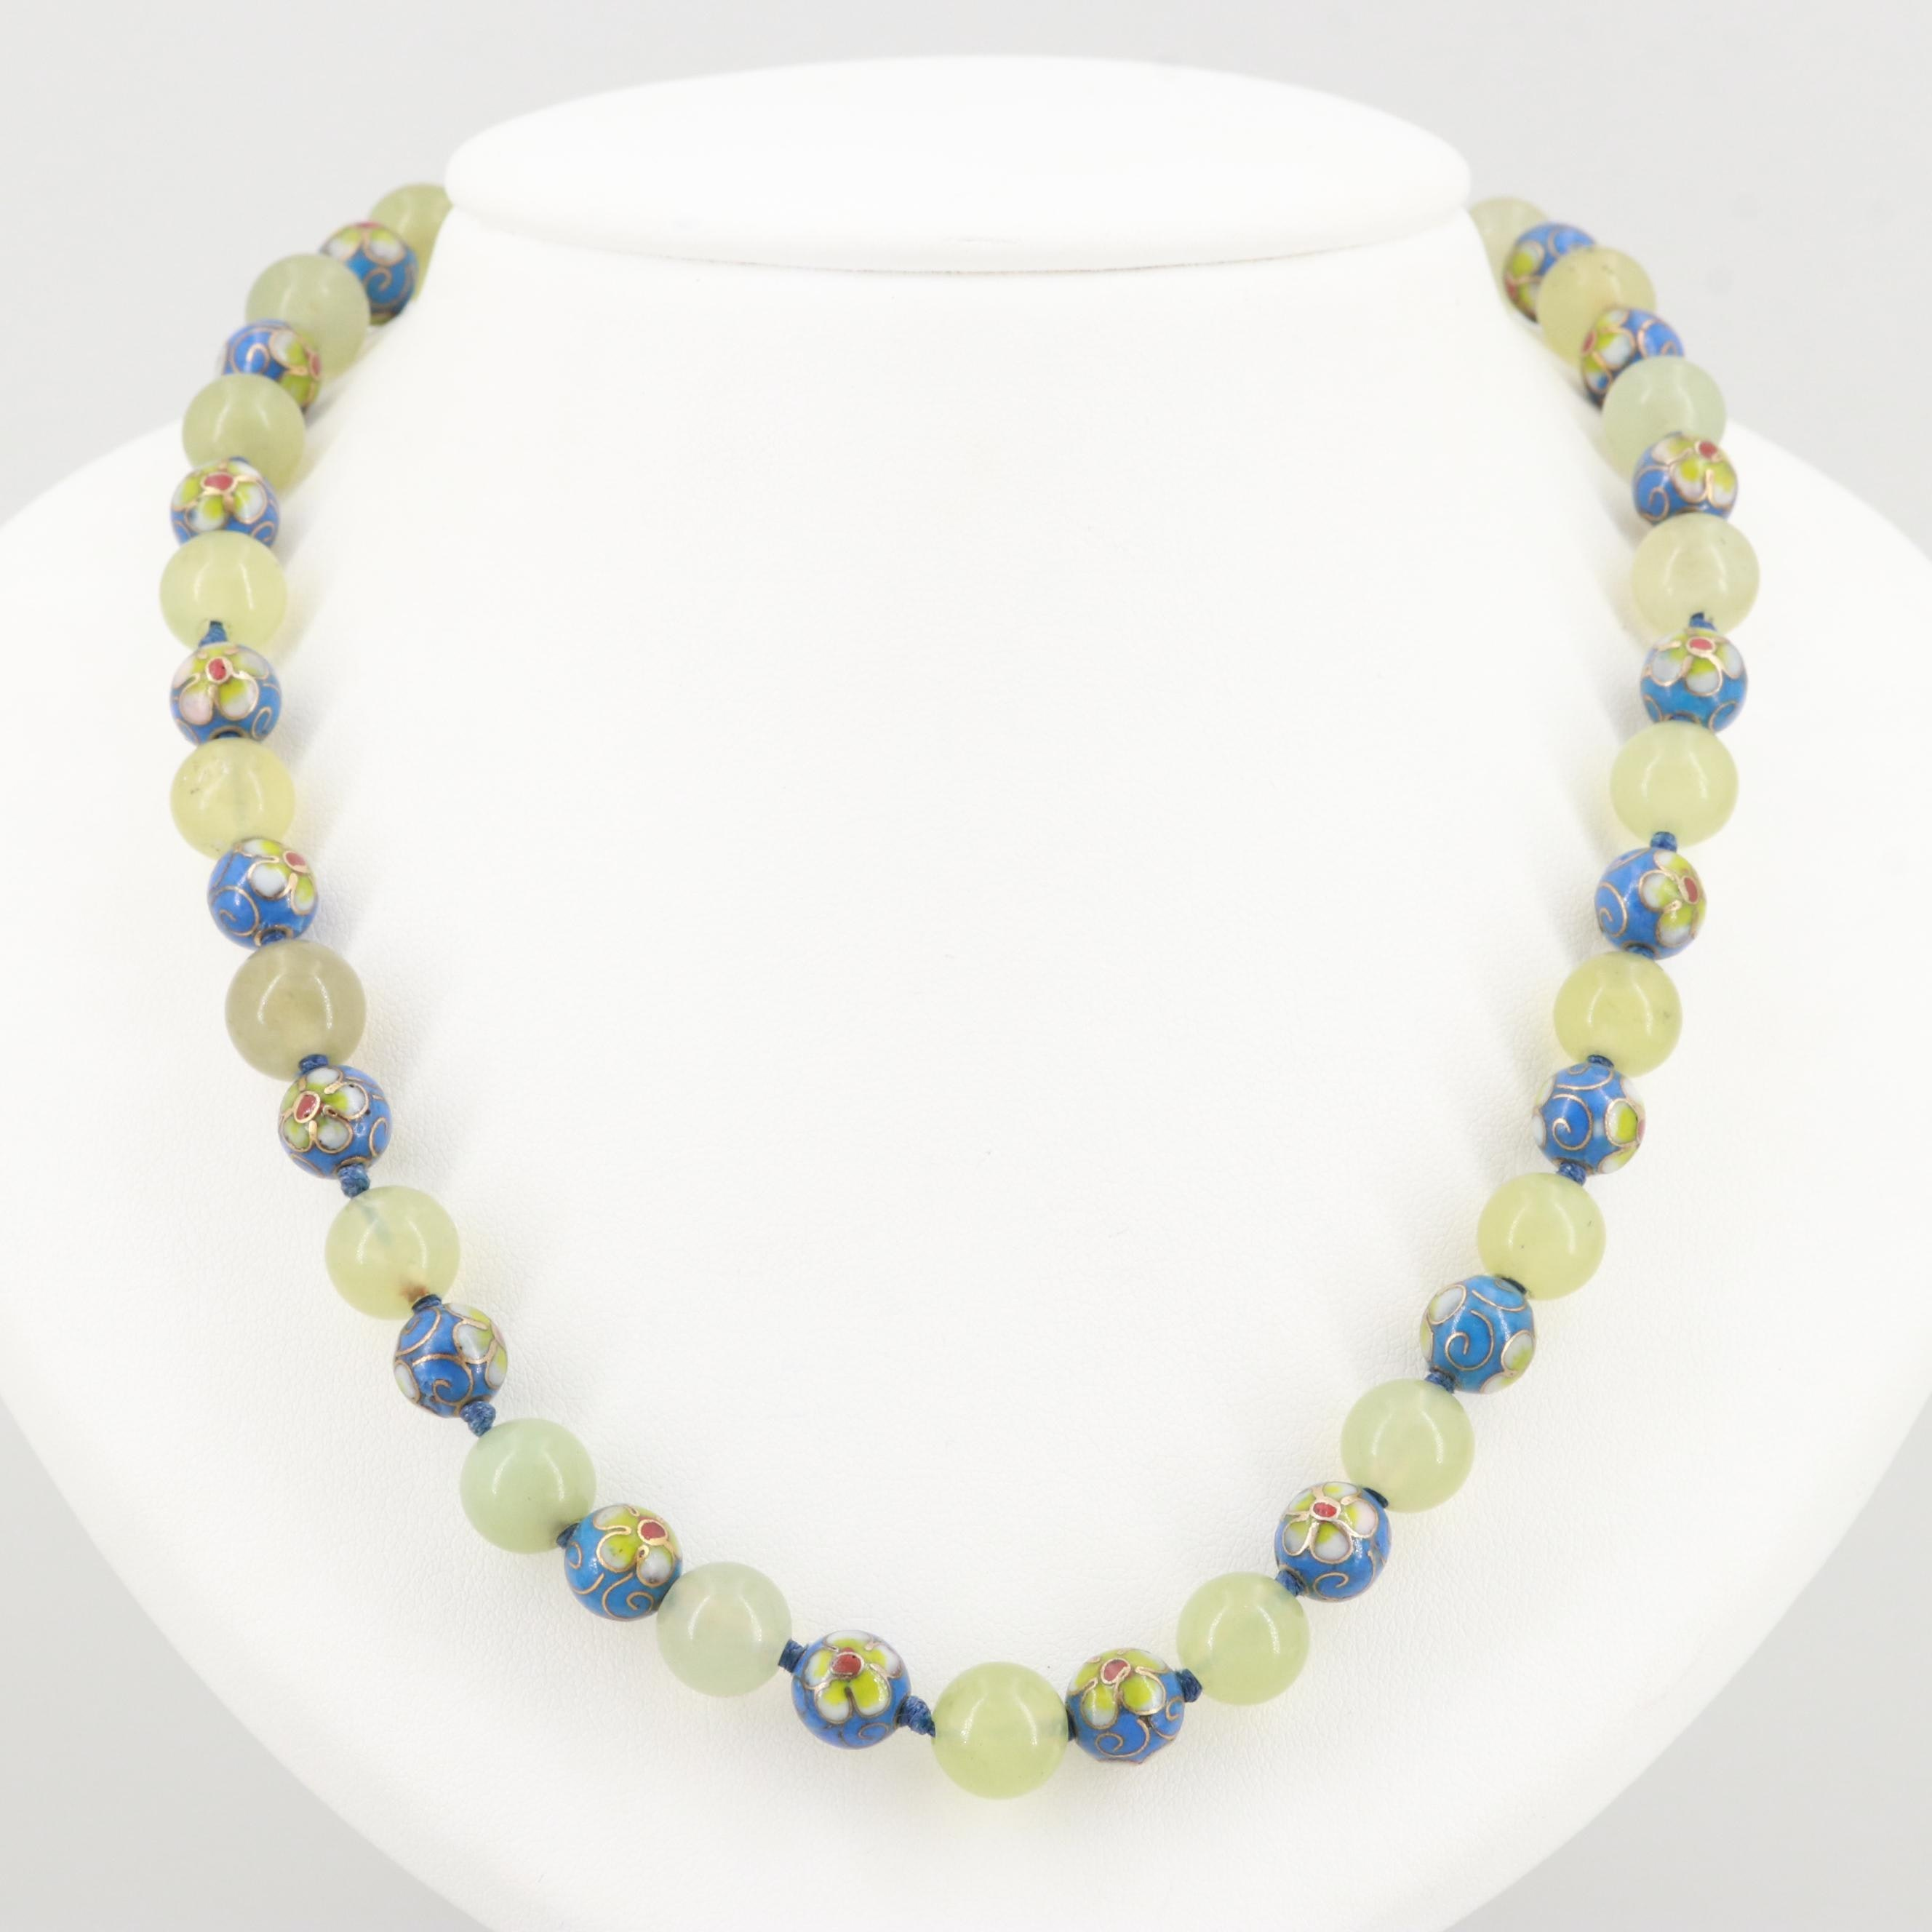 Vintage Bowenite and Cloisonne Glass Beaded Necklace